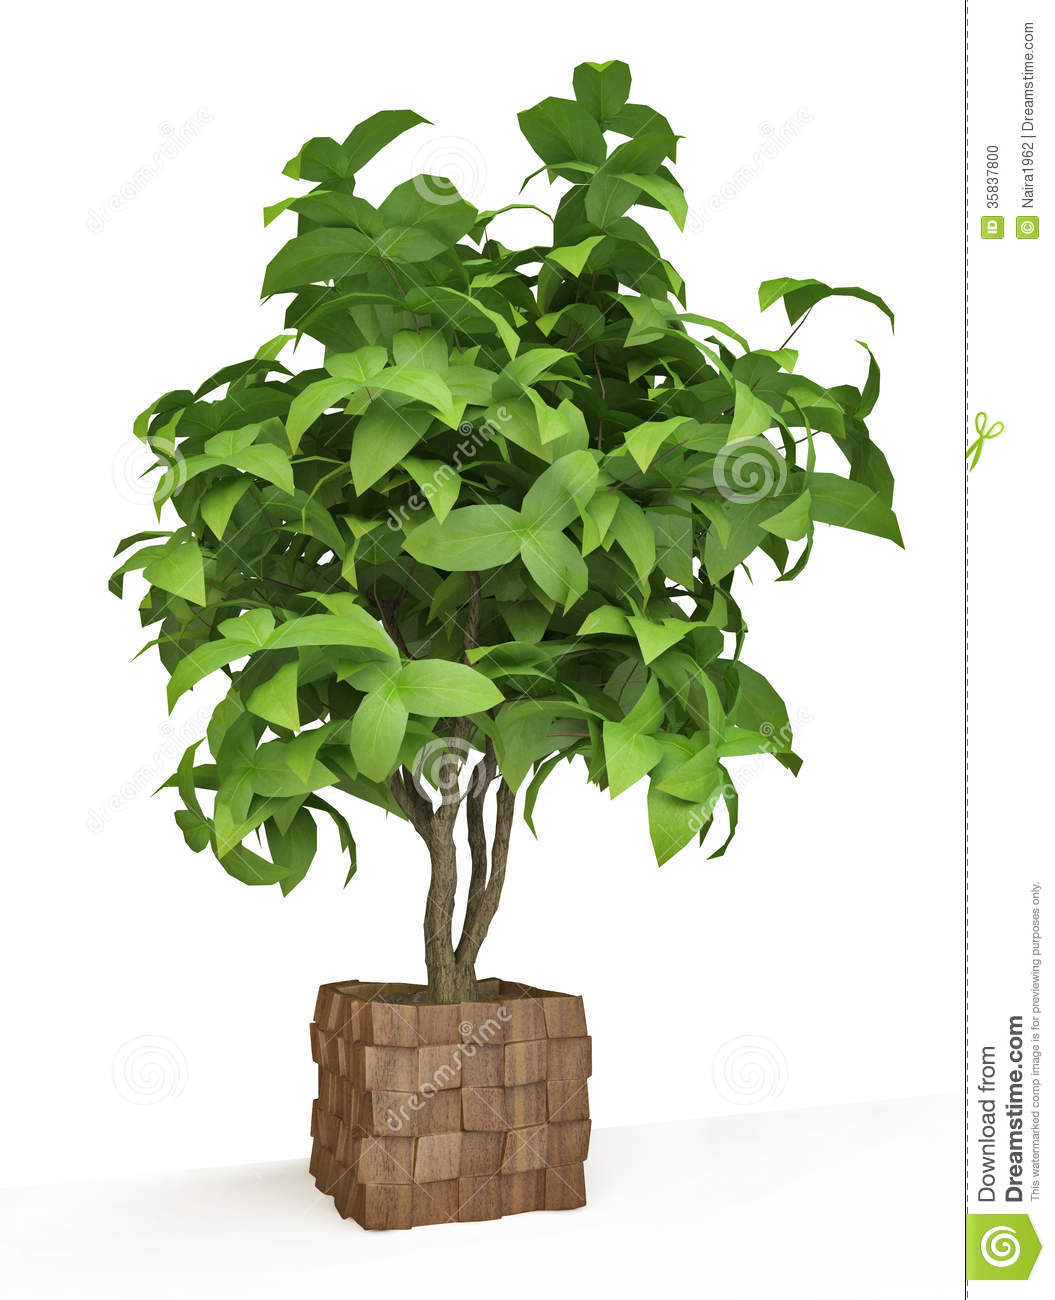 Arbre d coratif de plante d 39 int rieur photo stock image for Petite plante interieur